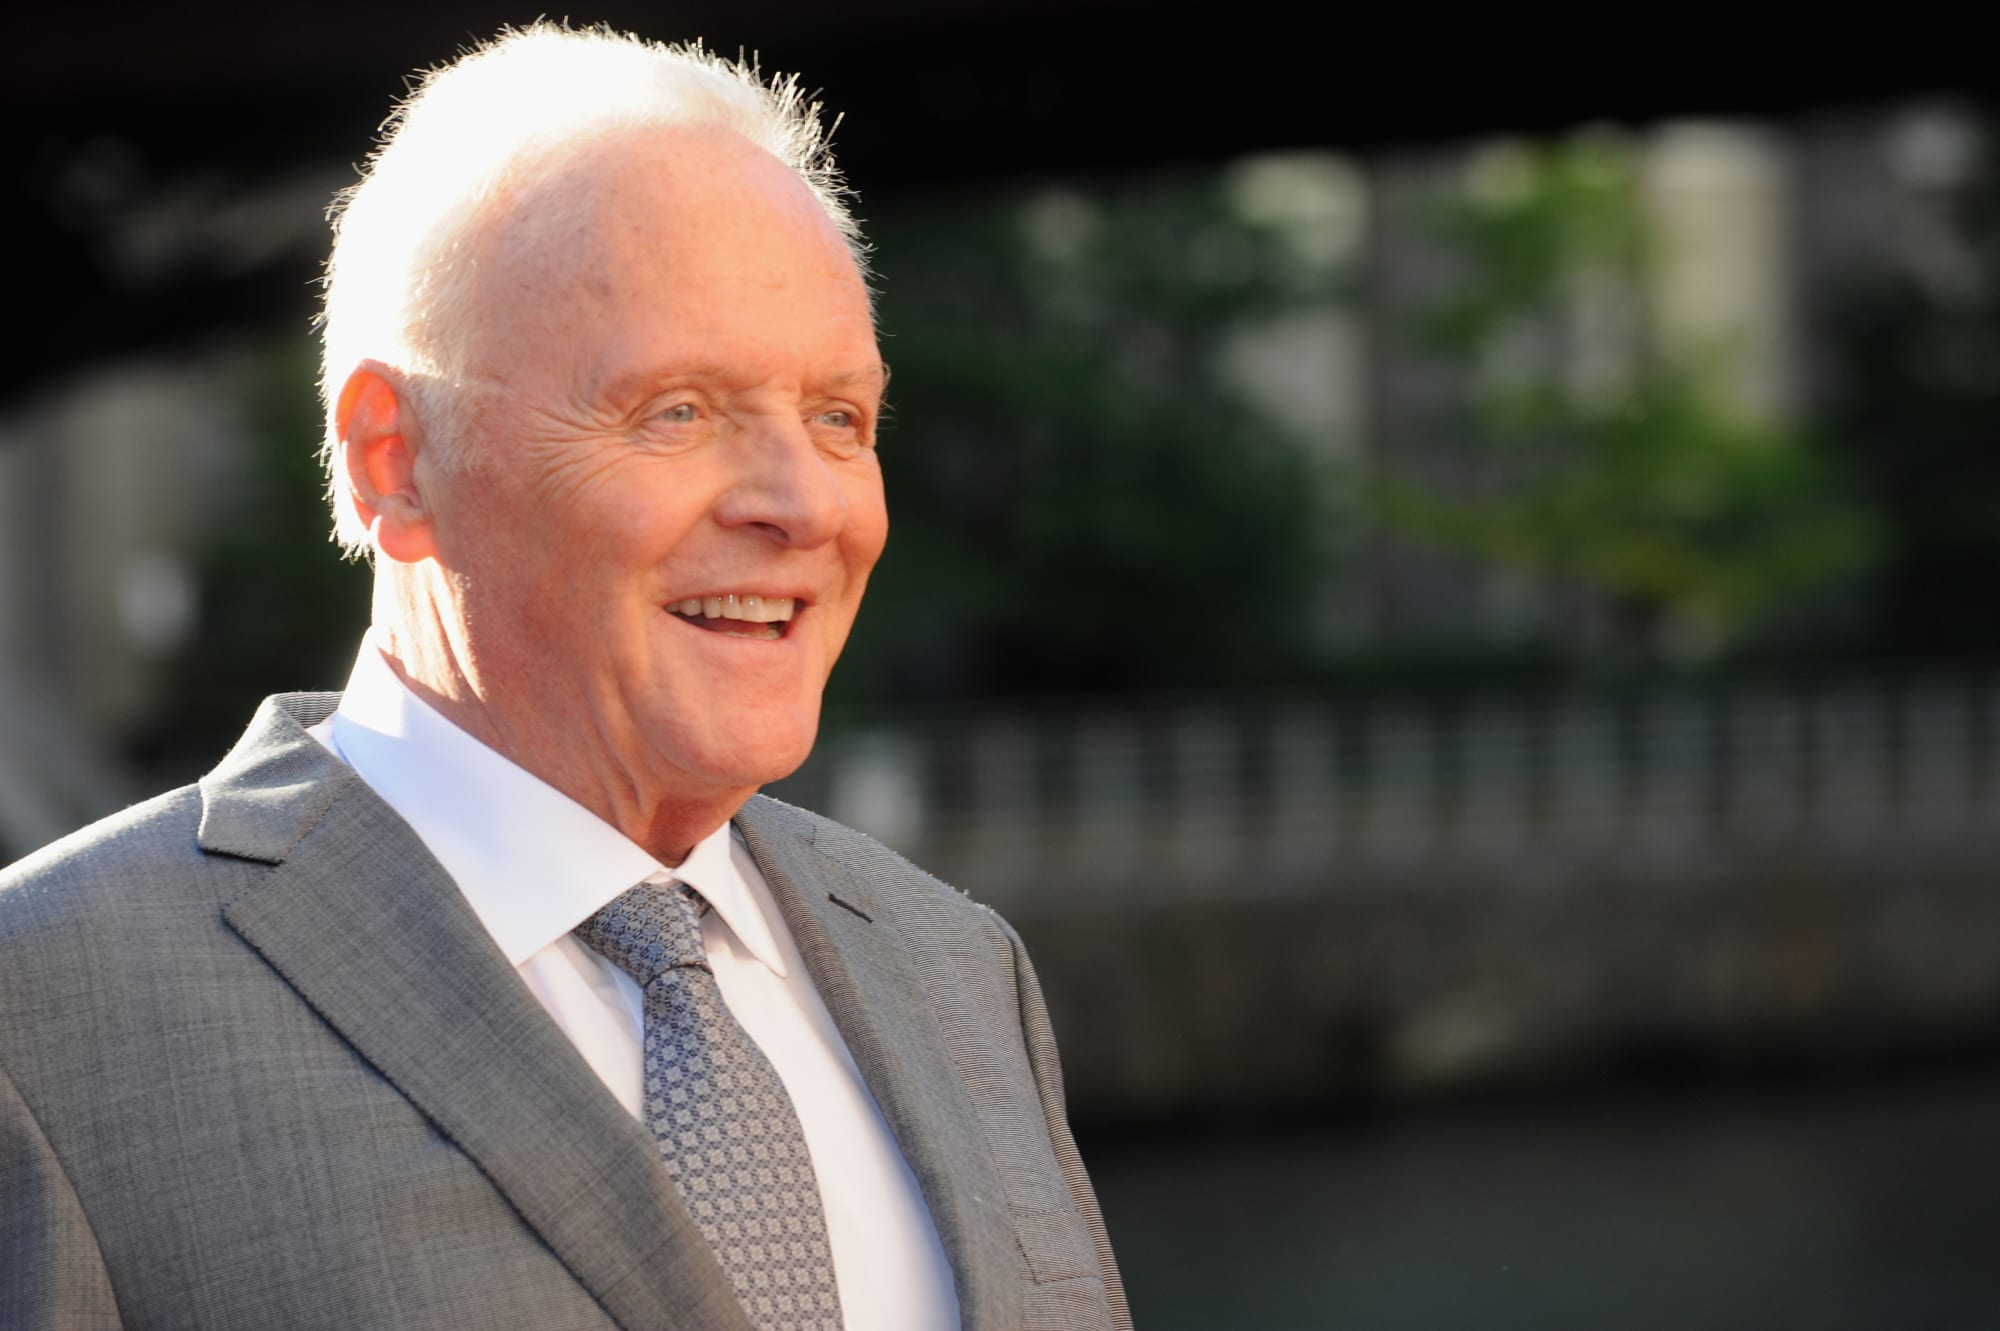 Anthony Hopkins News, Articles, Stories & Trends for Today